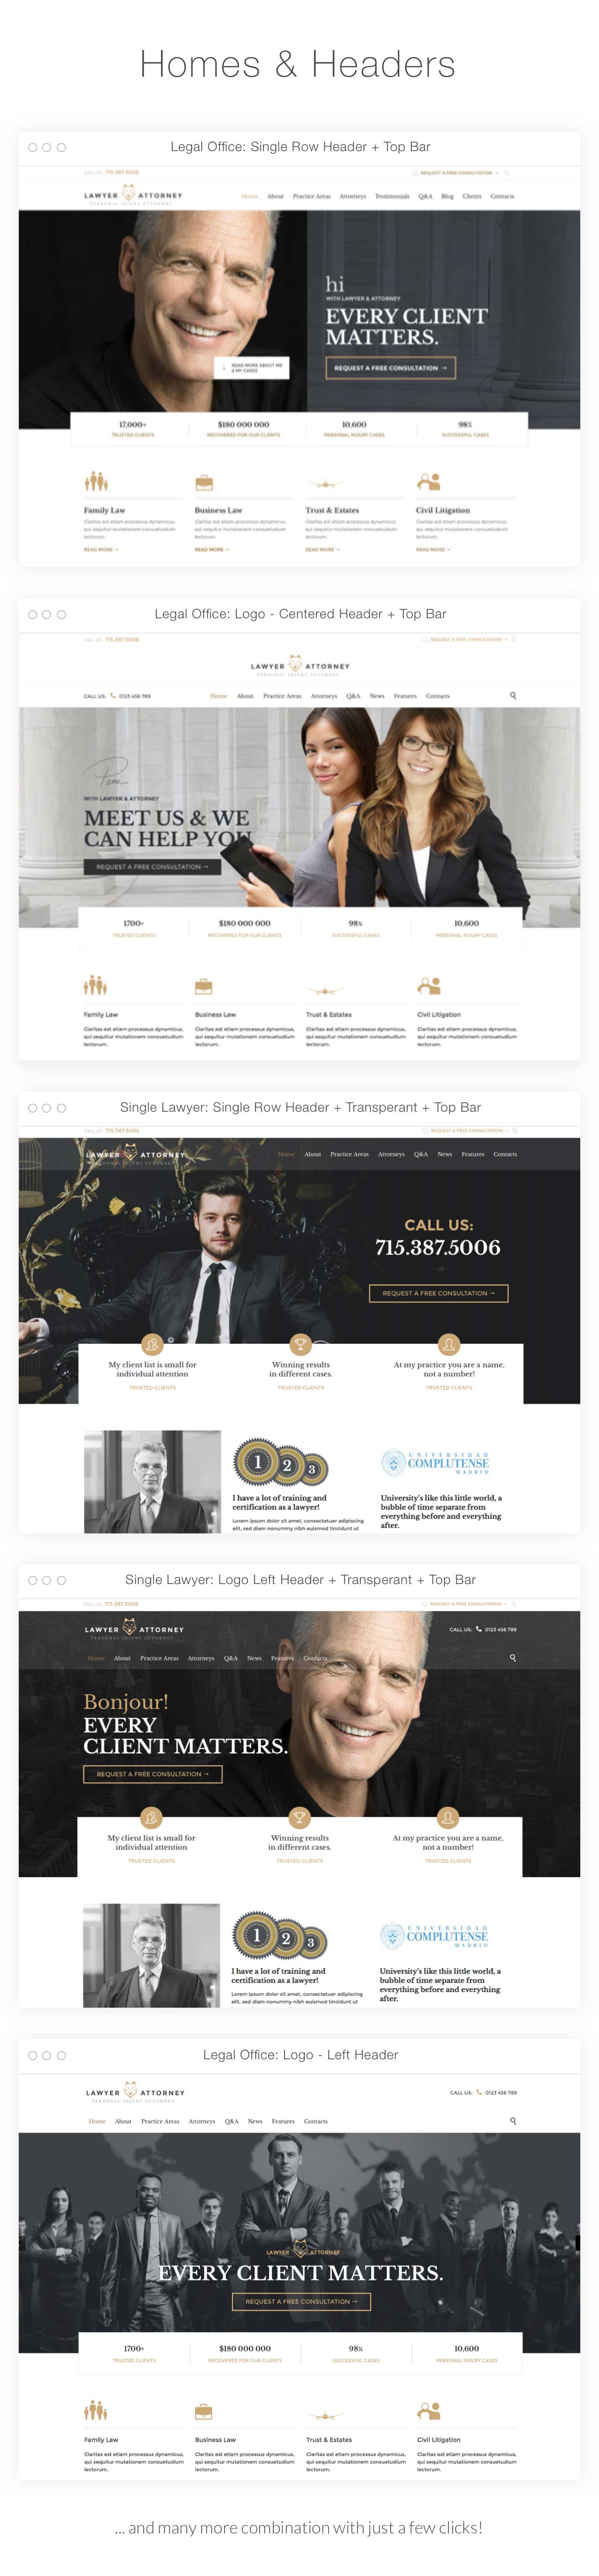 lawyer Introduction homes - Lawyer & Attorney - Law Firm WordPress